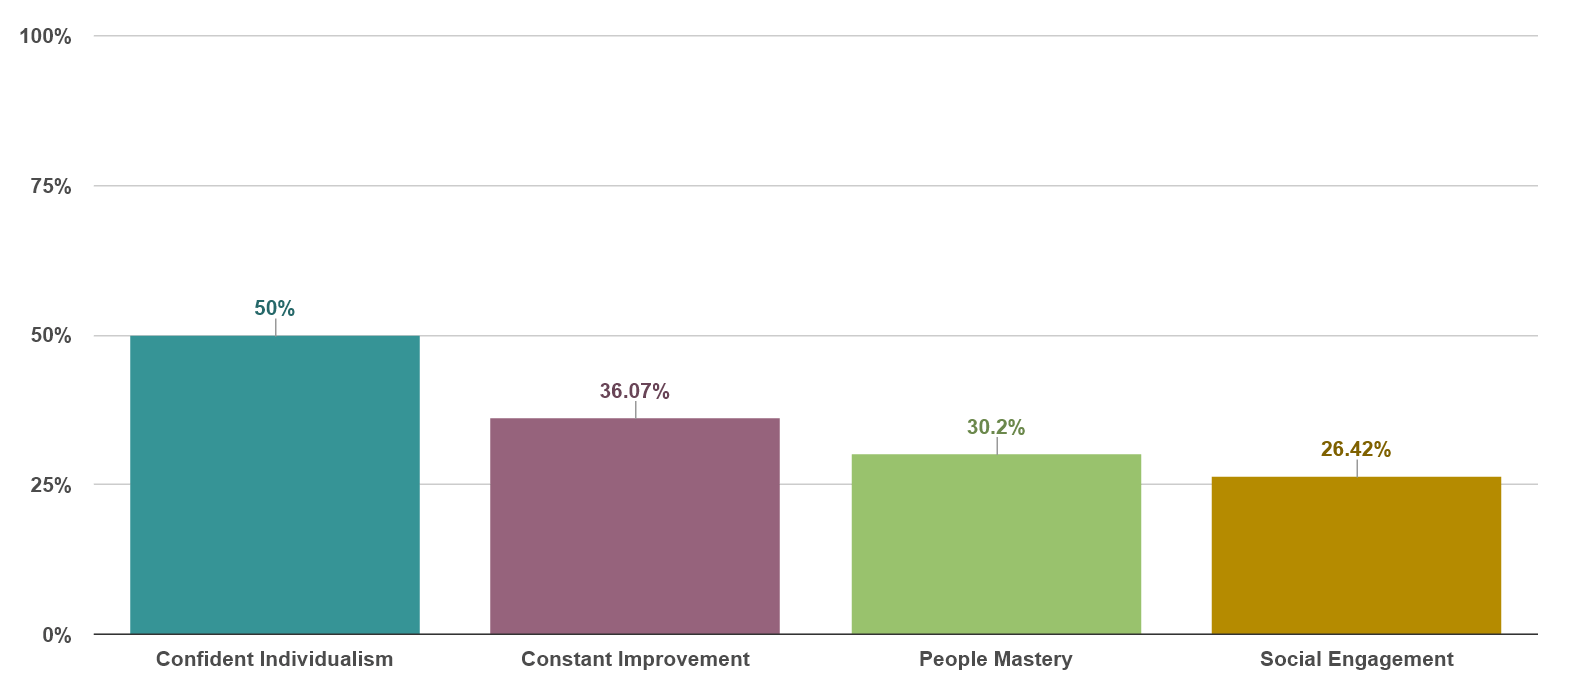 Agreement by Strategy: Confident Individualism 50%, Constant Improvement 36%, People Mastery 30%, Social Engagement 26%.